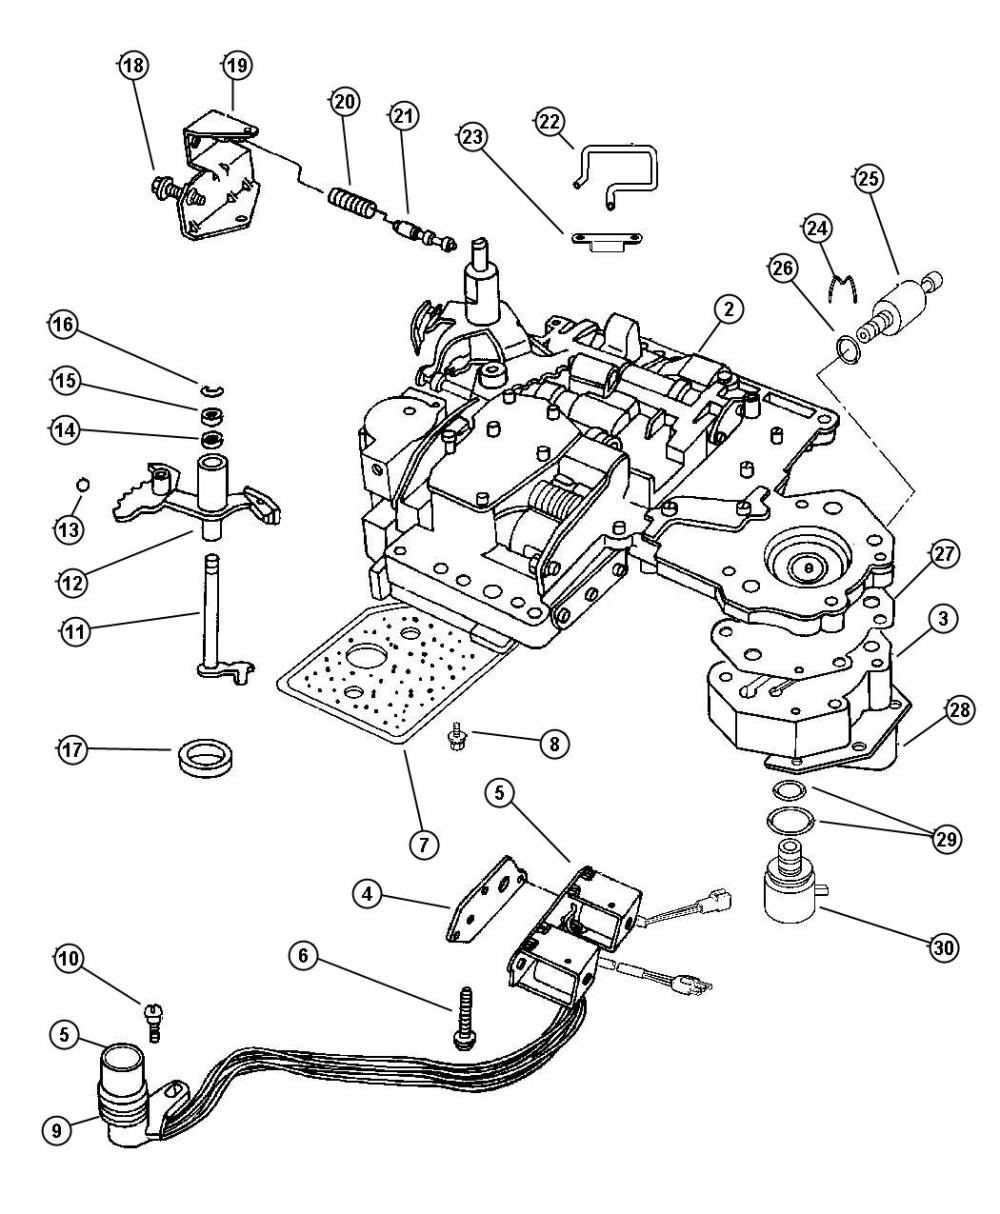 medium resolution of dodge 46re wiring diagram wiring diagrams dodge ram 46re transmission diagrams 46re wiring diagram wiring diagram